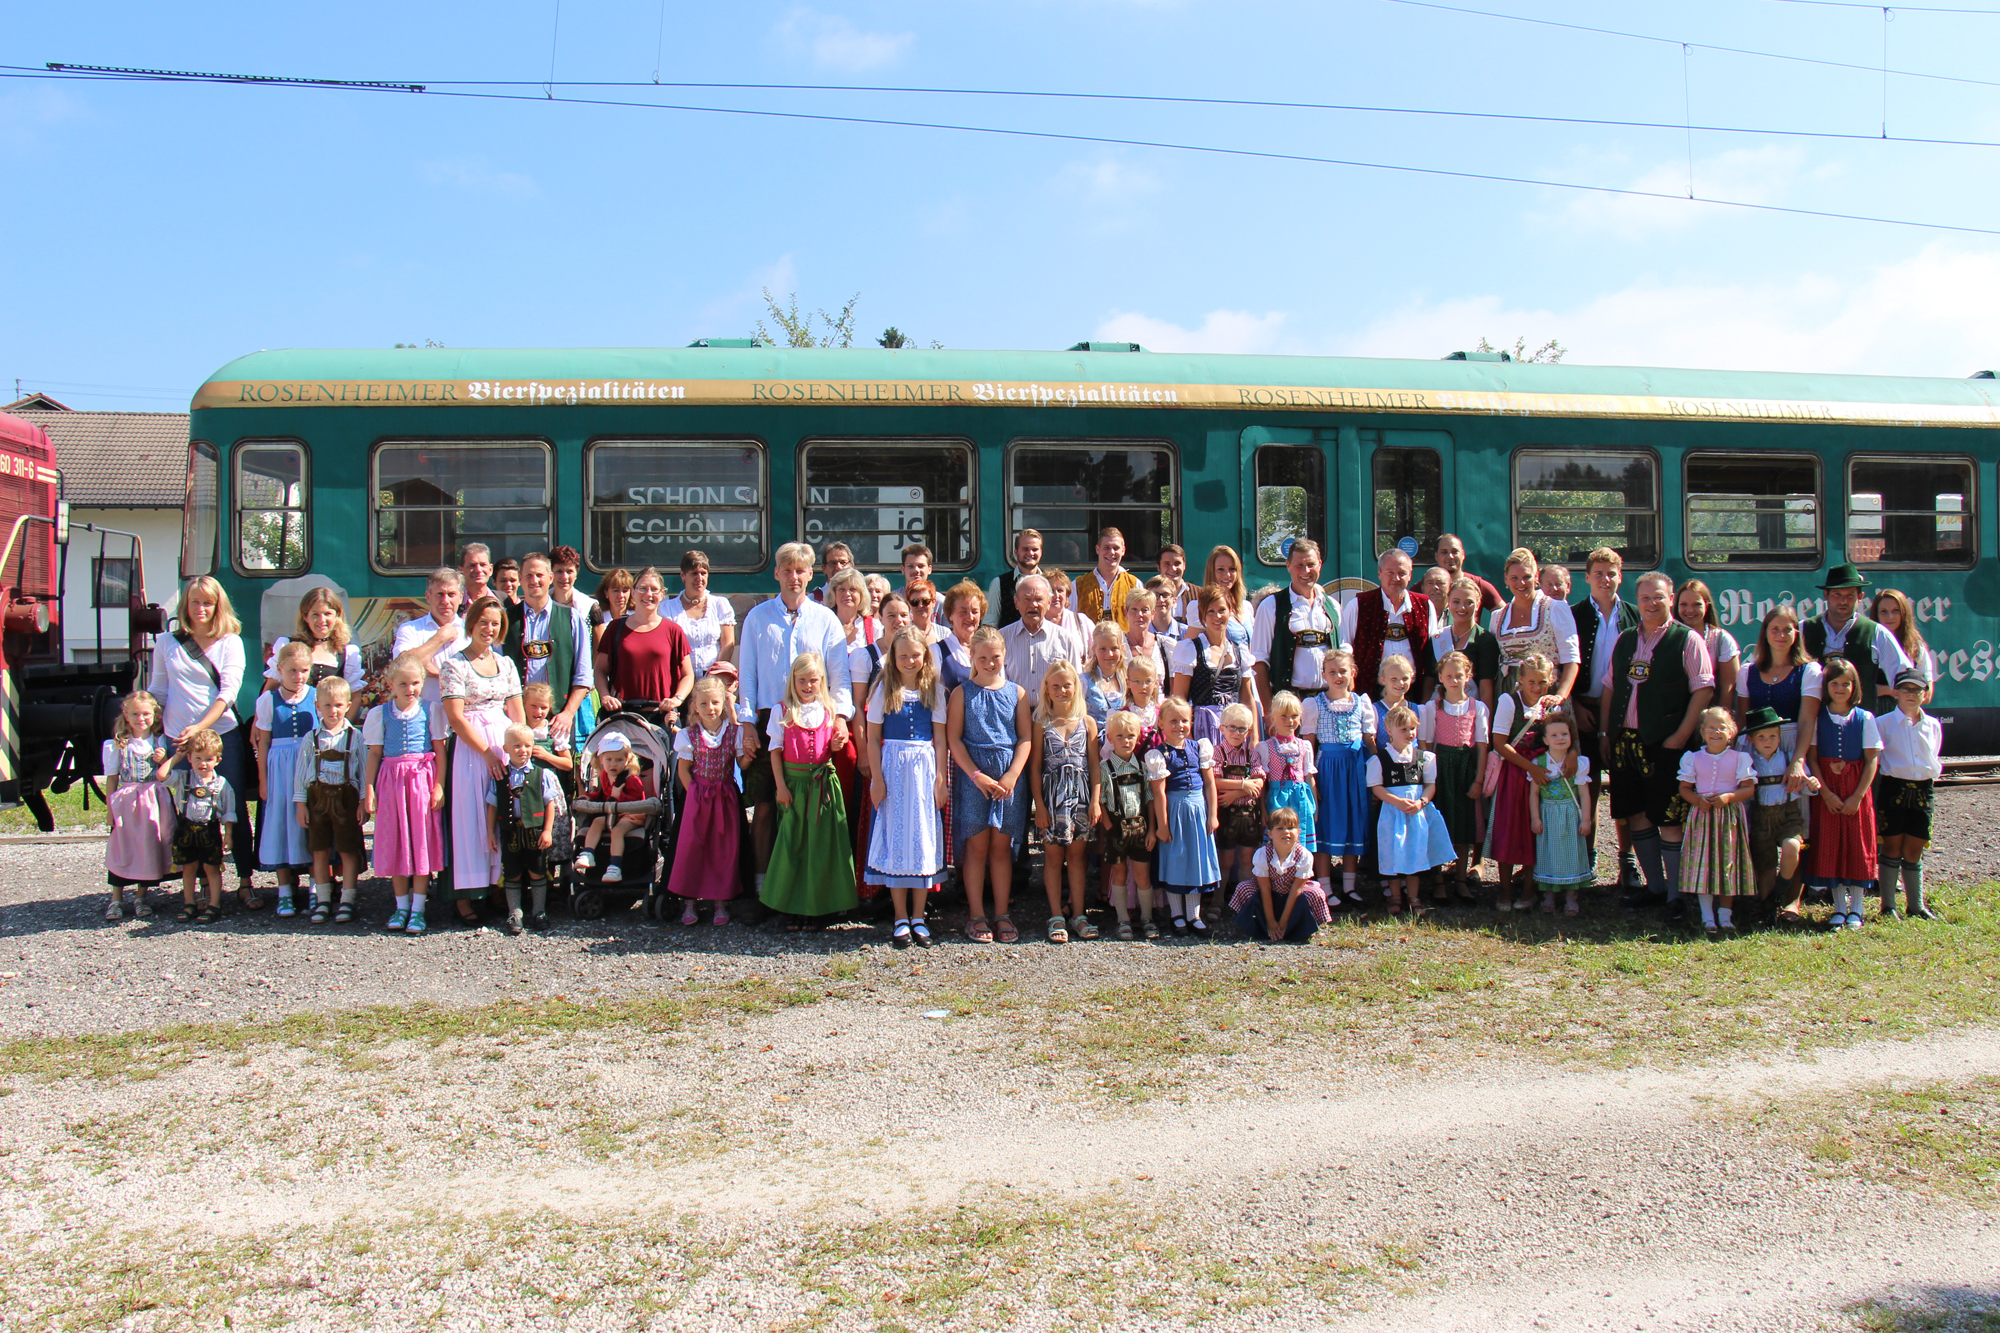 gewerbeverband wiesn Express 2016 gruppenbild